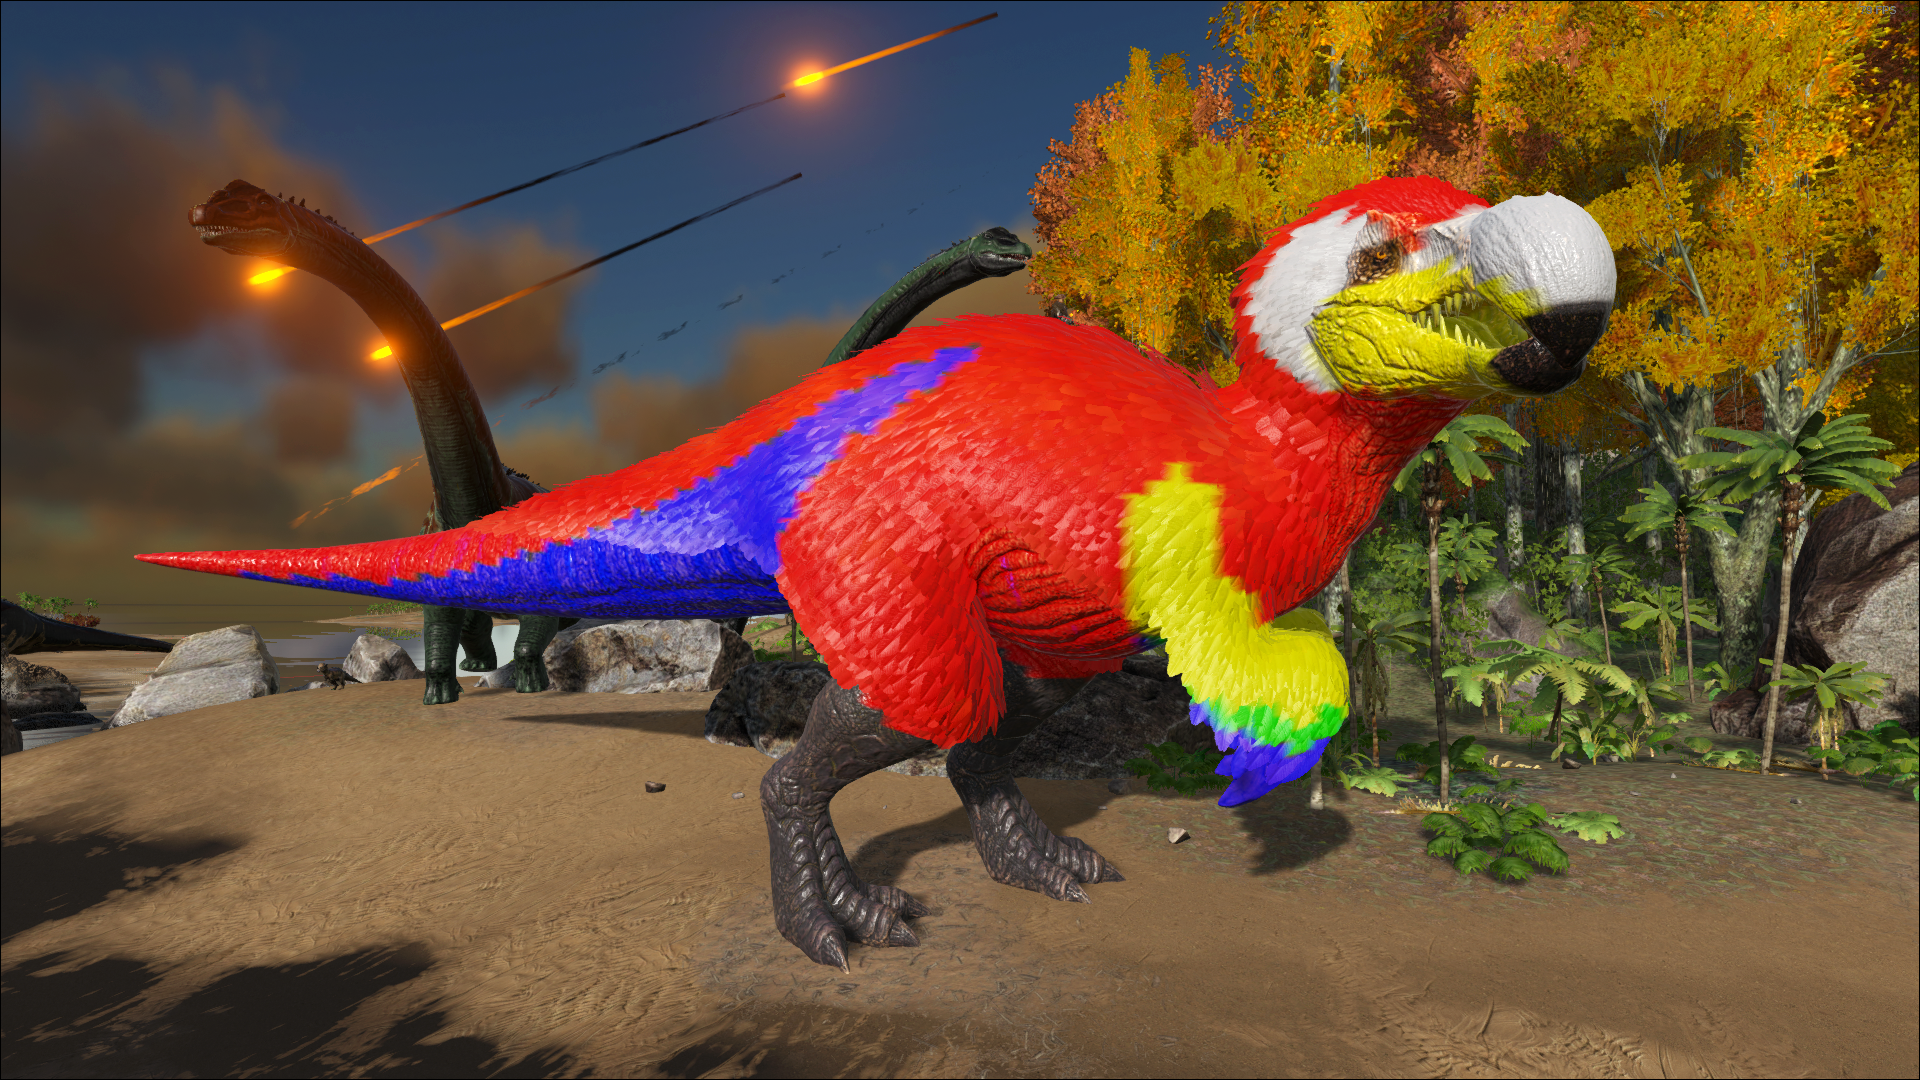 1478124279_ark-survival-evolved-screenshot-2016-11-03-00-01-21-81-jpg